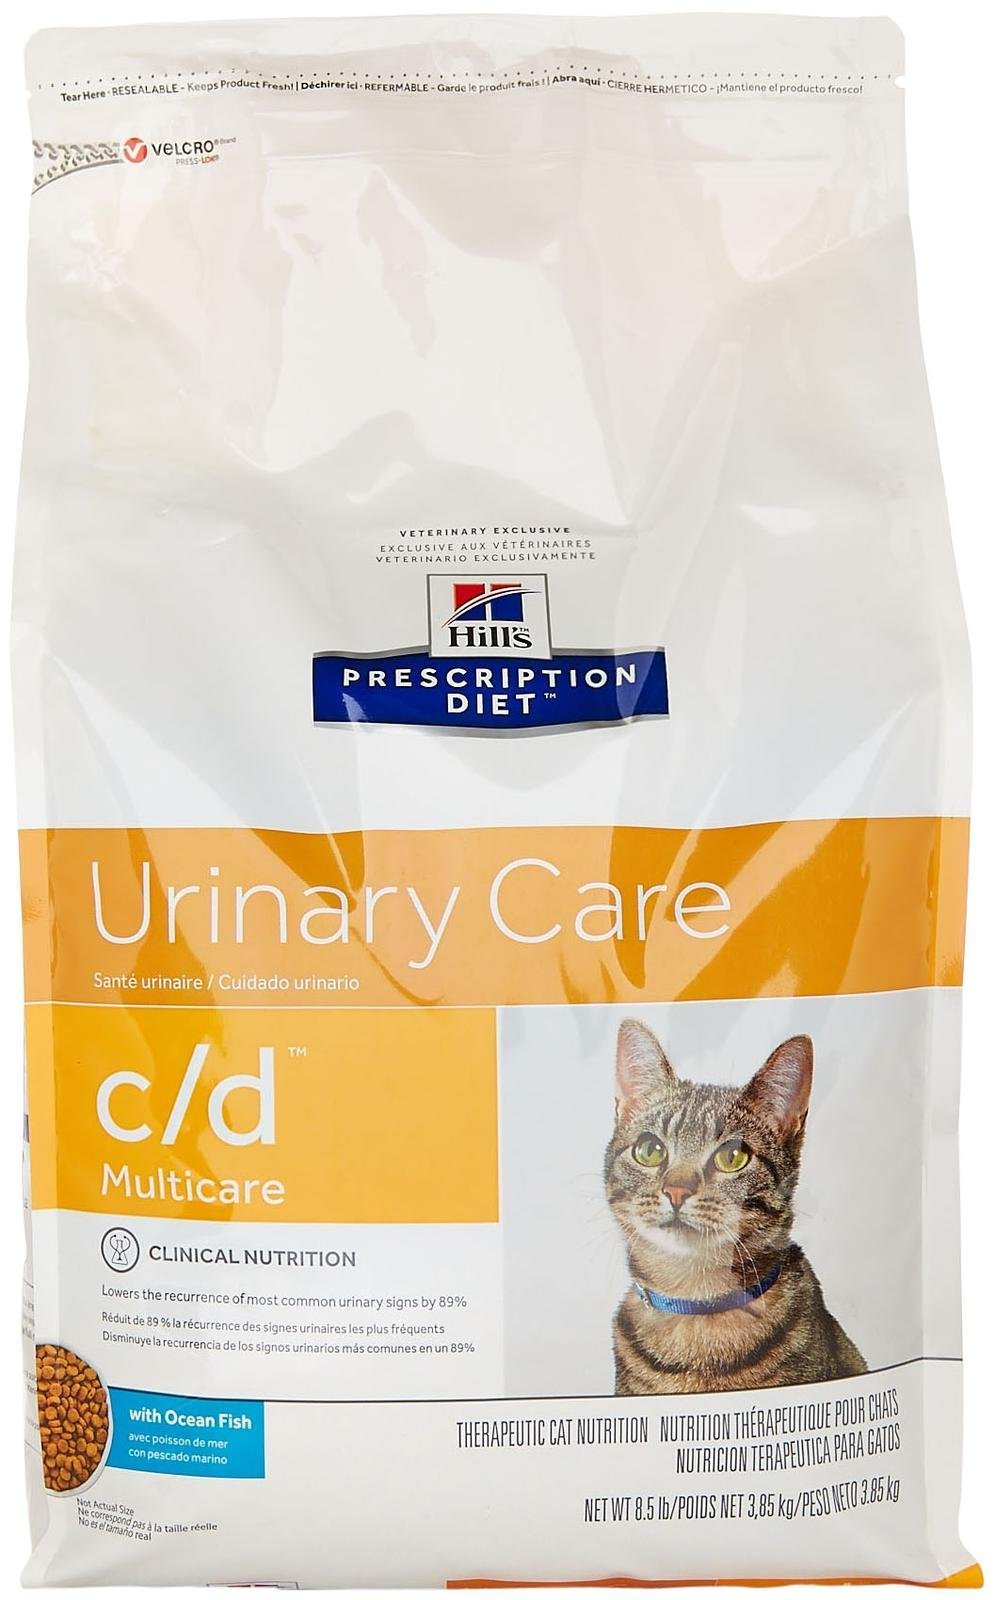 Hill'S Prescription Diet C/D Multicare Feline Urinary Care - Ocean Fish - 8.5Lb by HILL'S PRESCRIPTION DIET